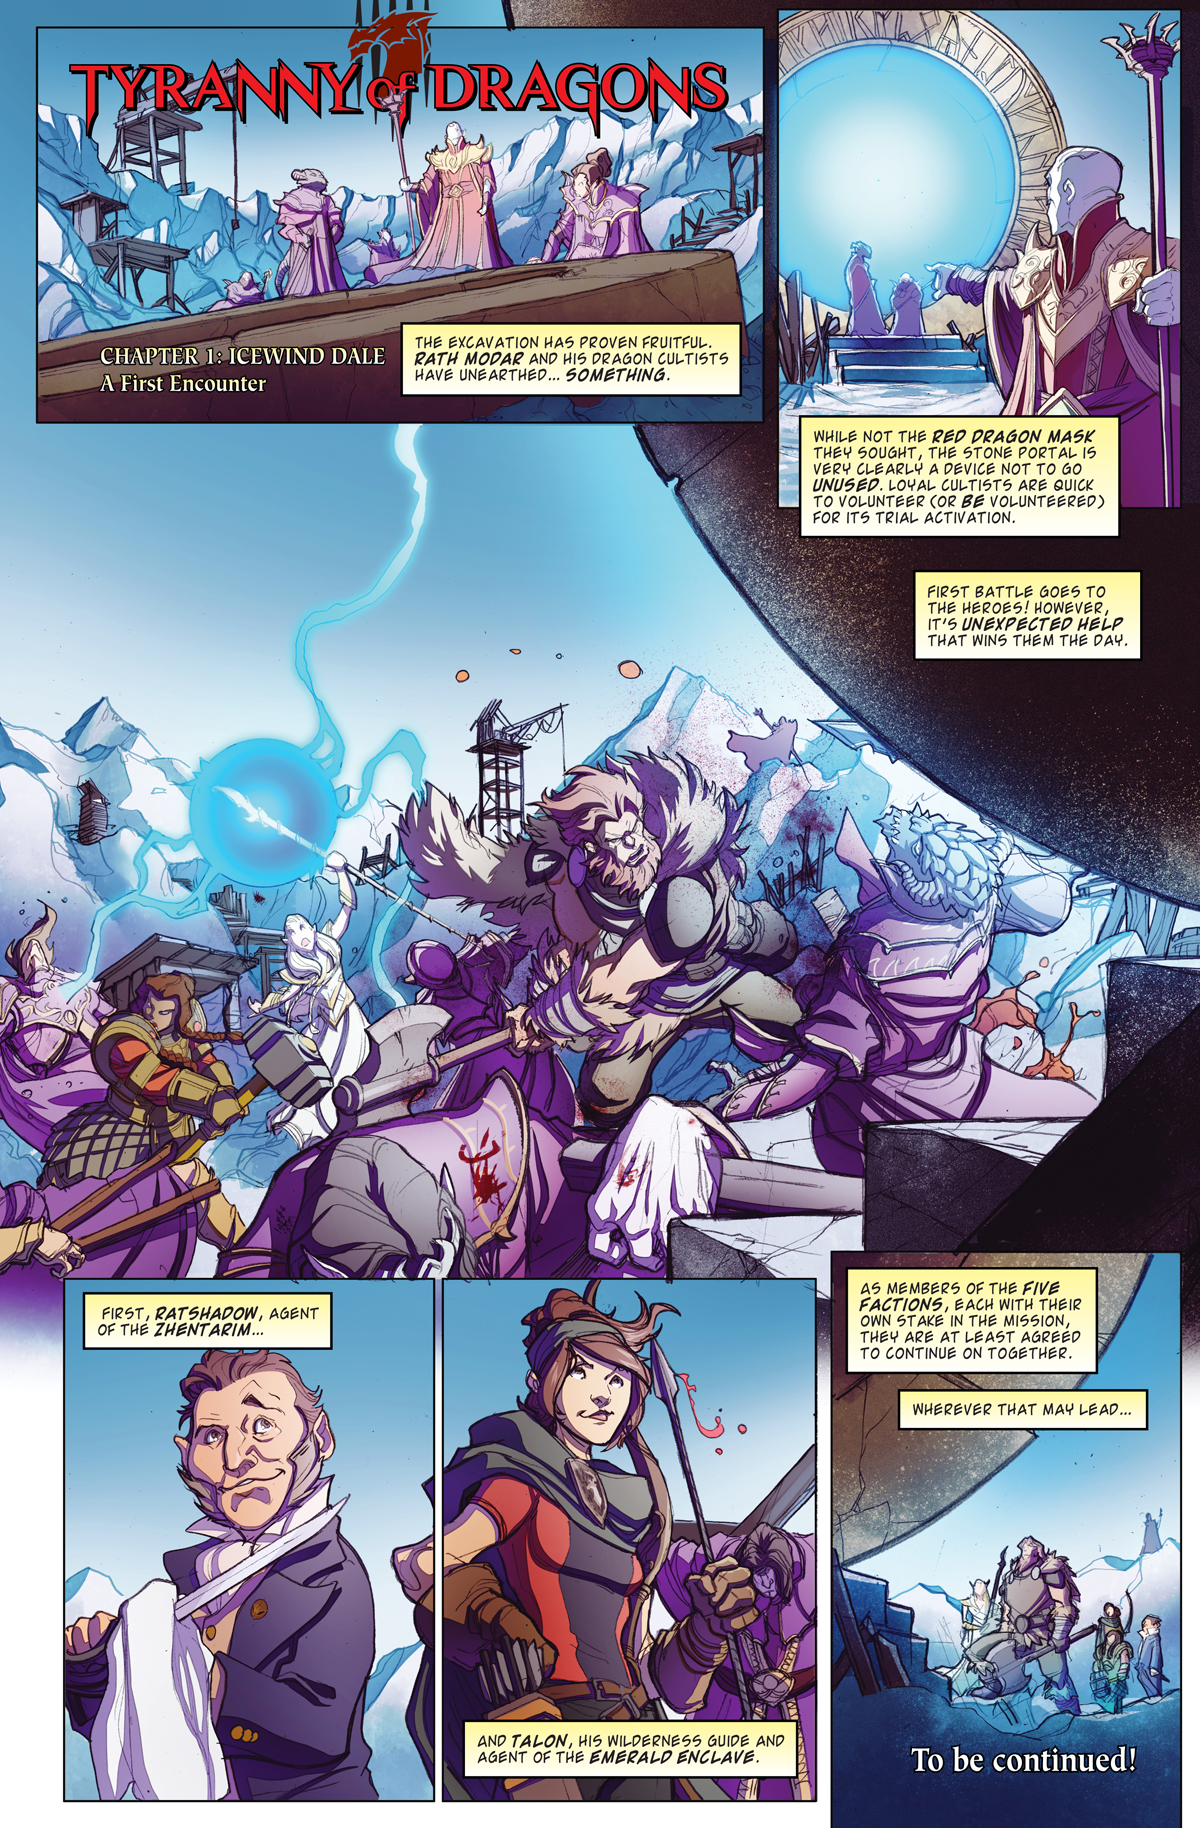 tyranny of dragons online comic 2 dungeons dragons